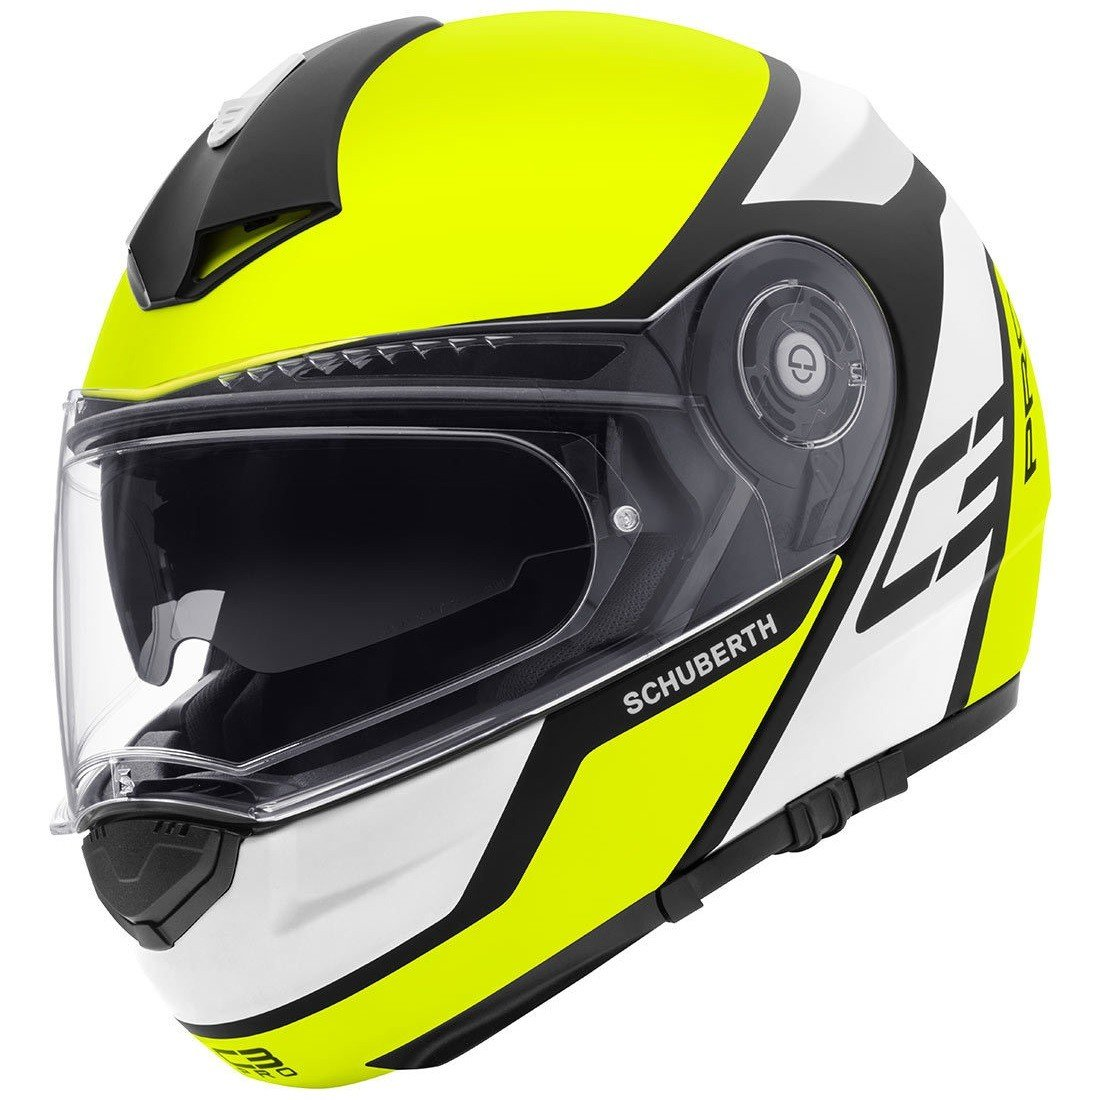 Schuberth C3 Pro Echo yellow M (56/57)